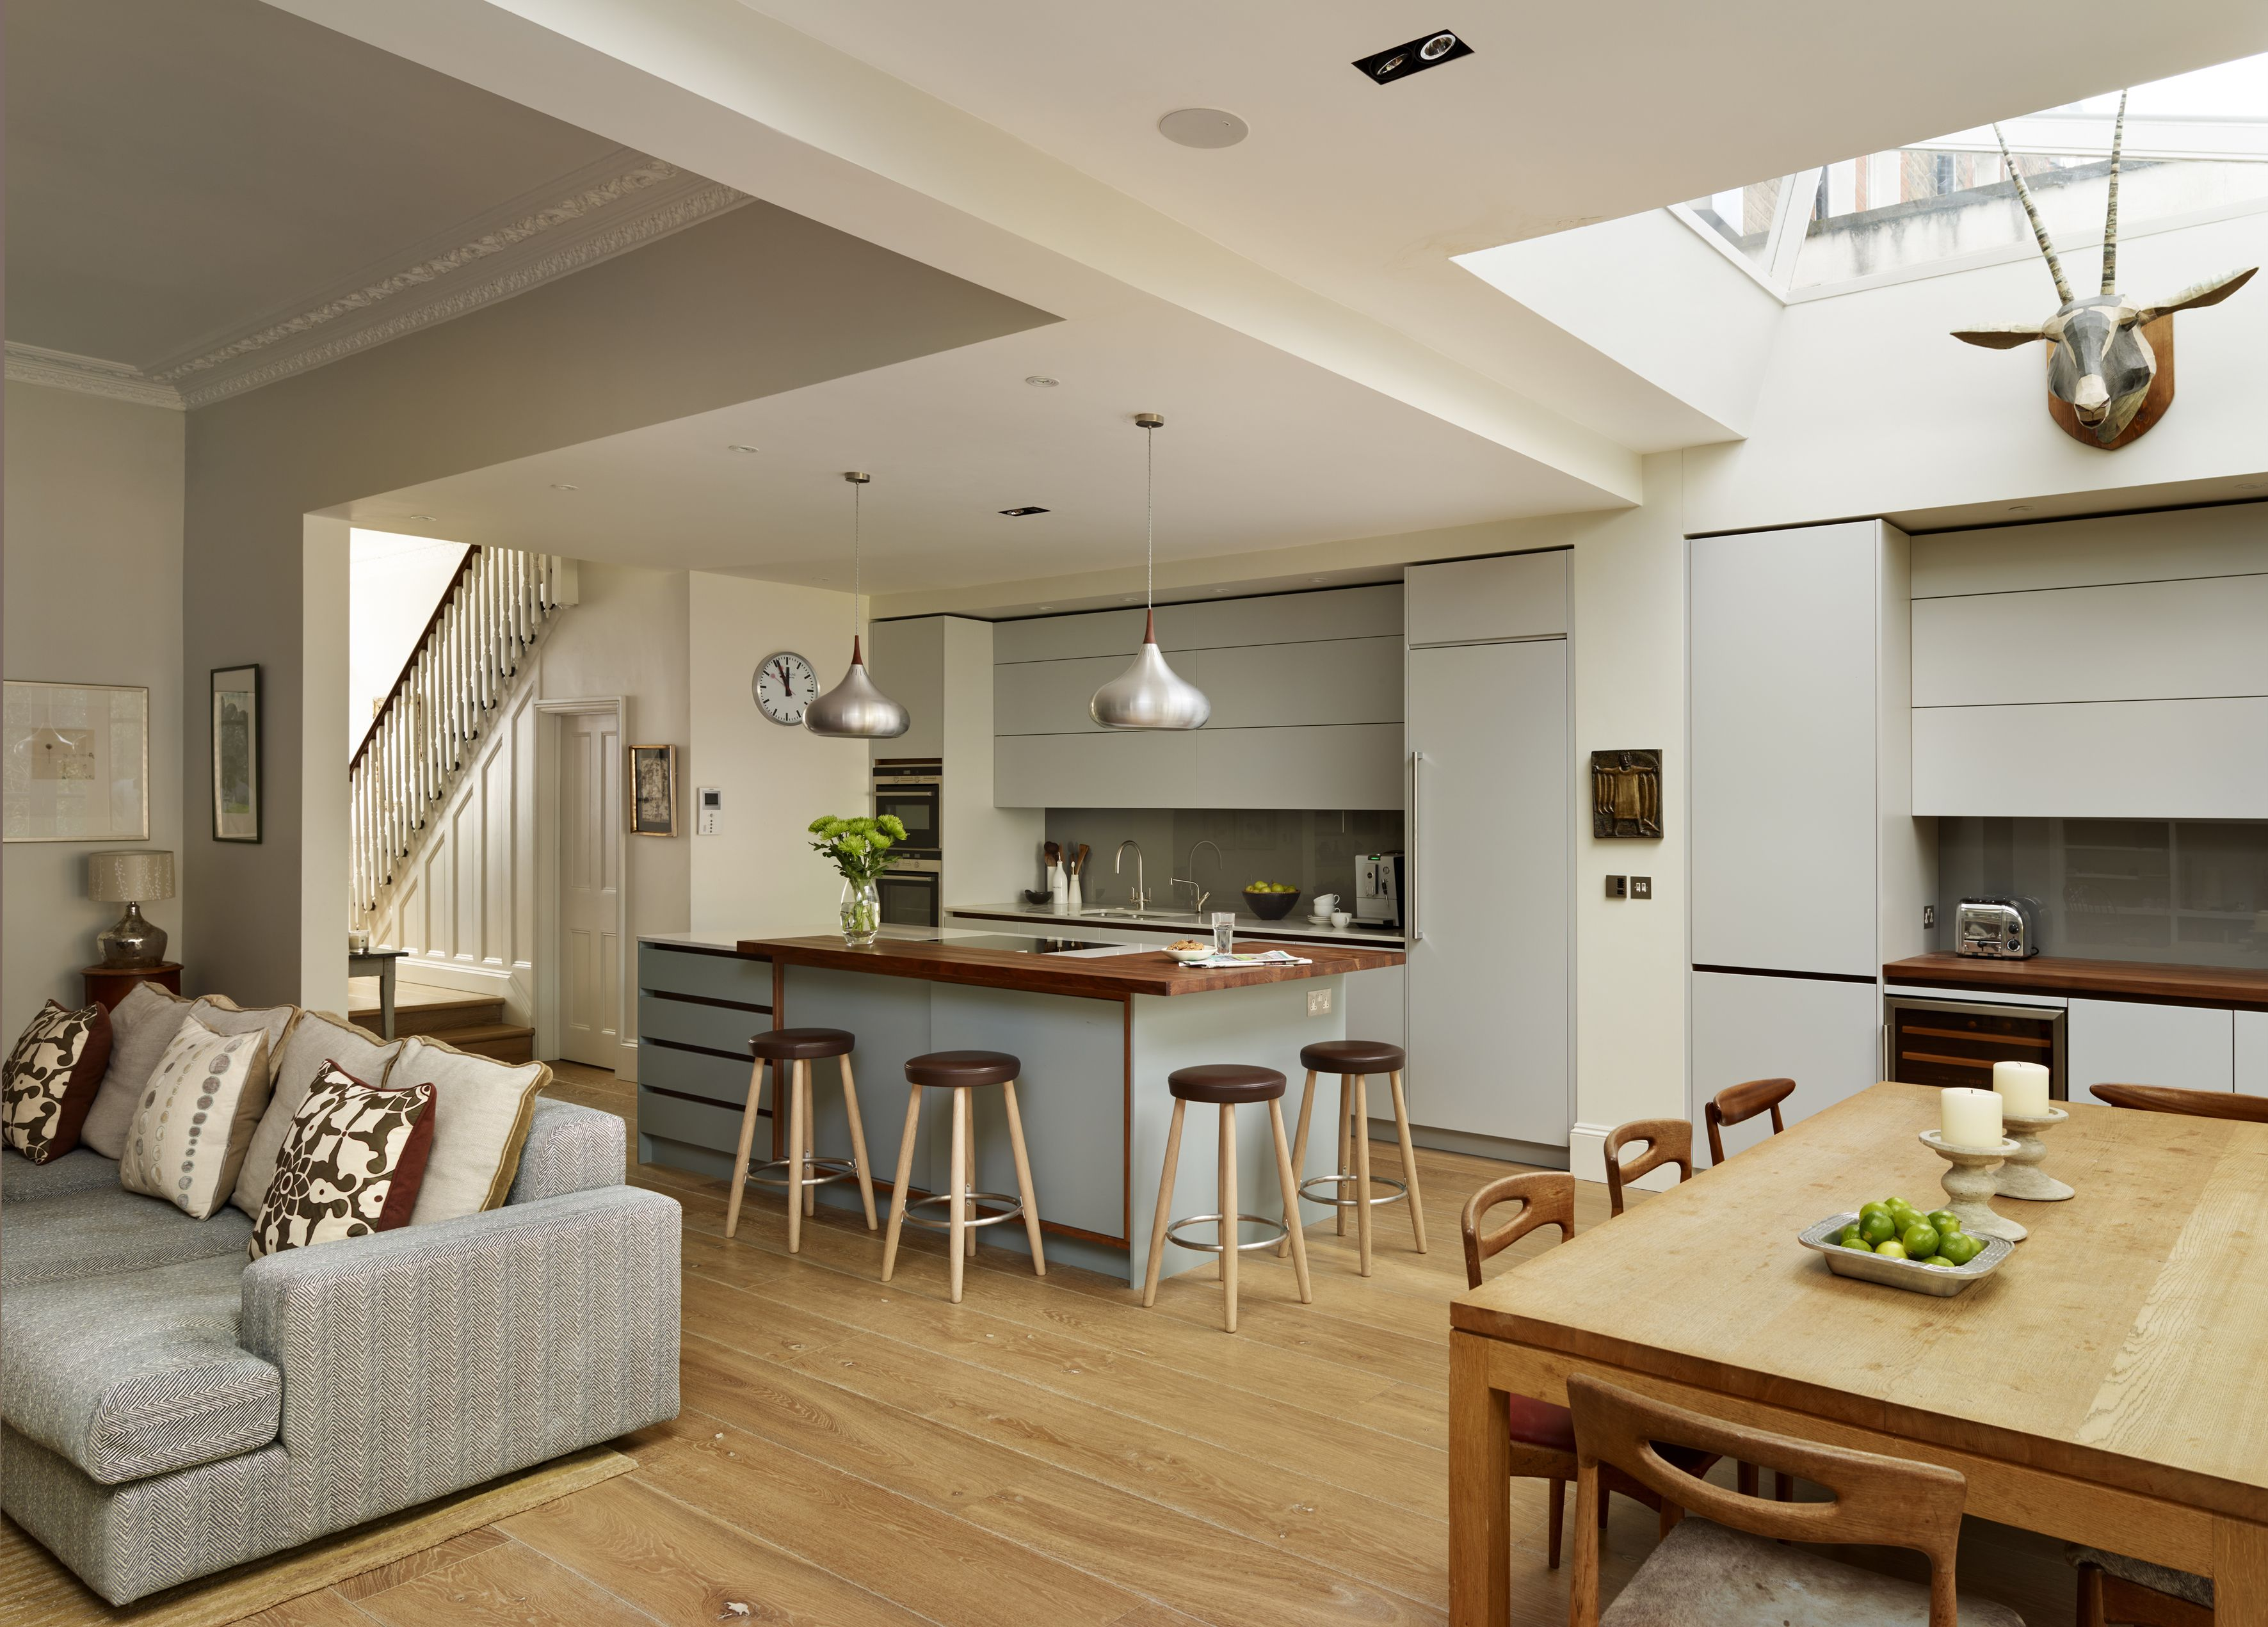 Roundhouse Urbo kitchen in extension Open plan kitchen